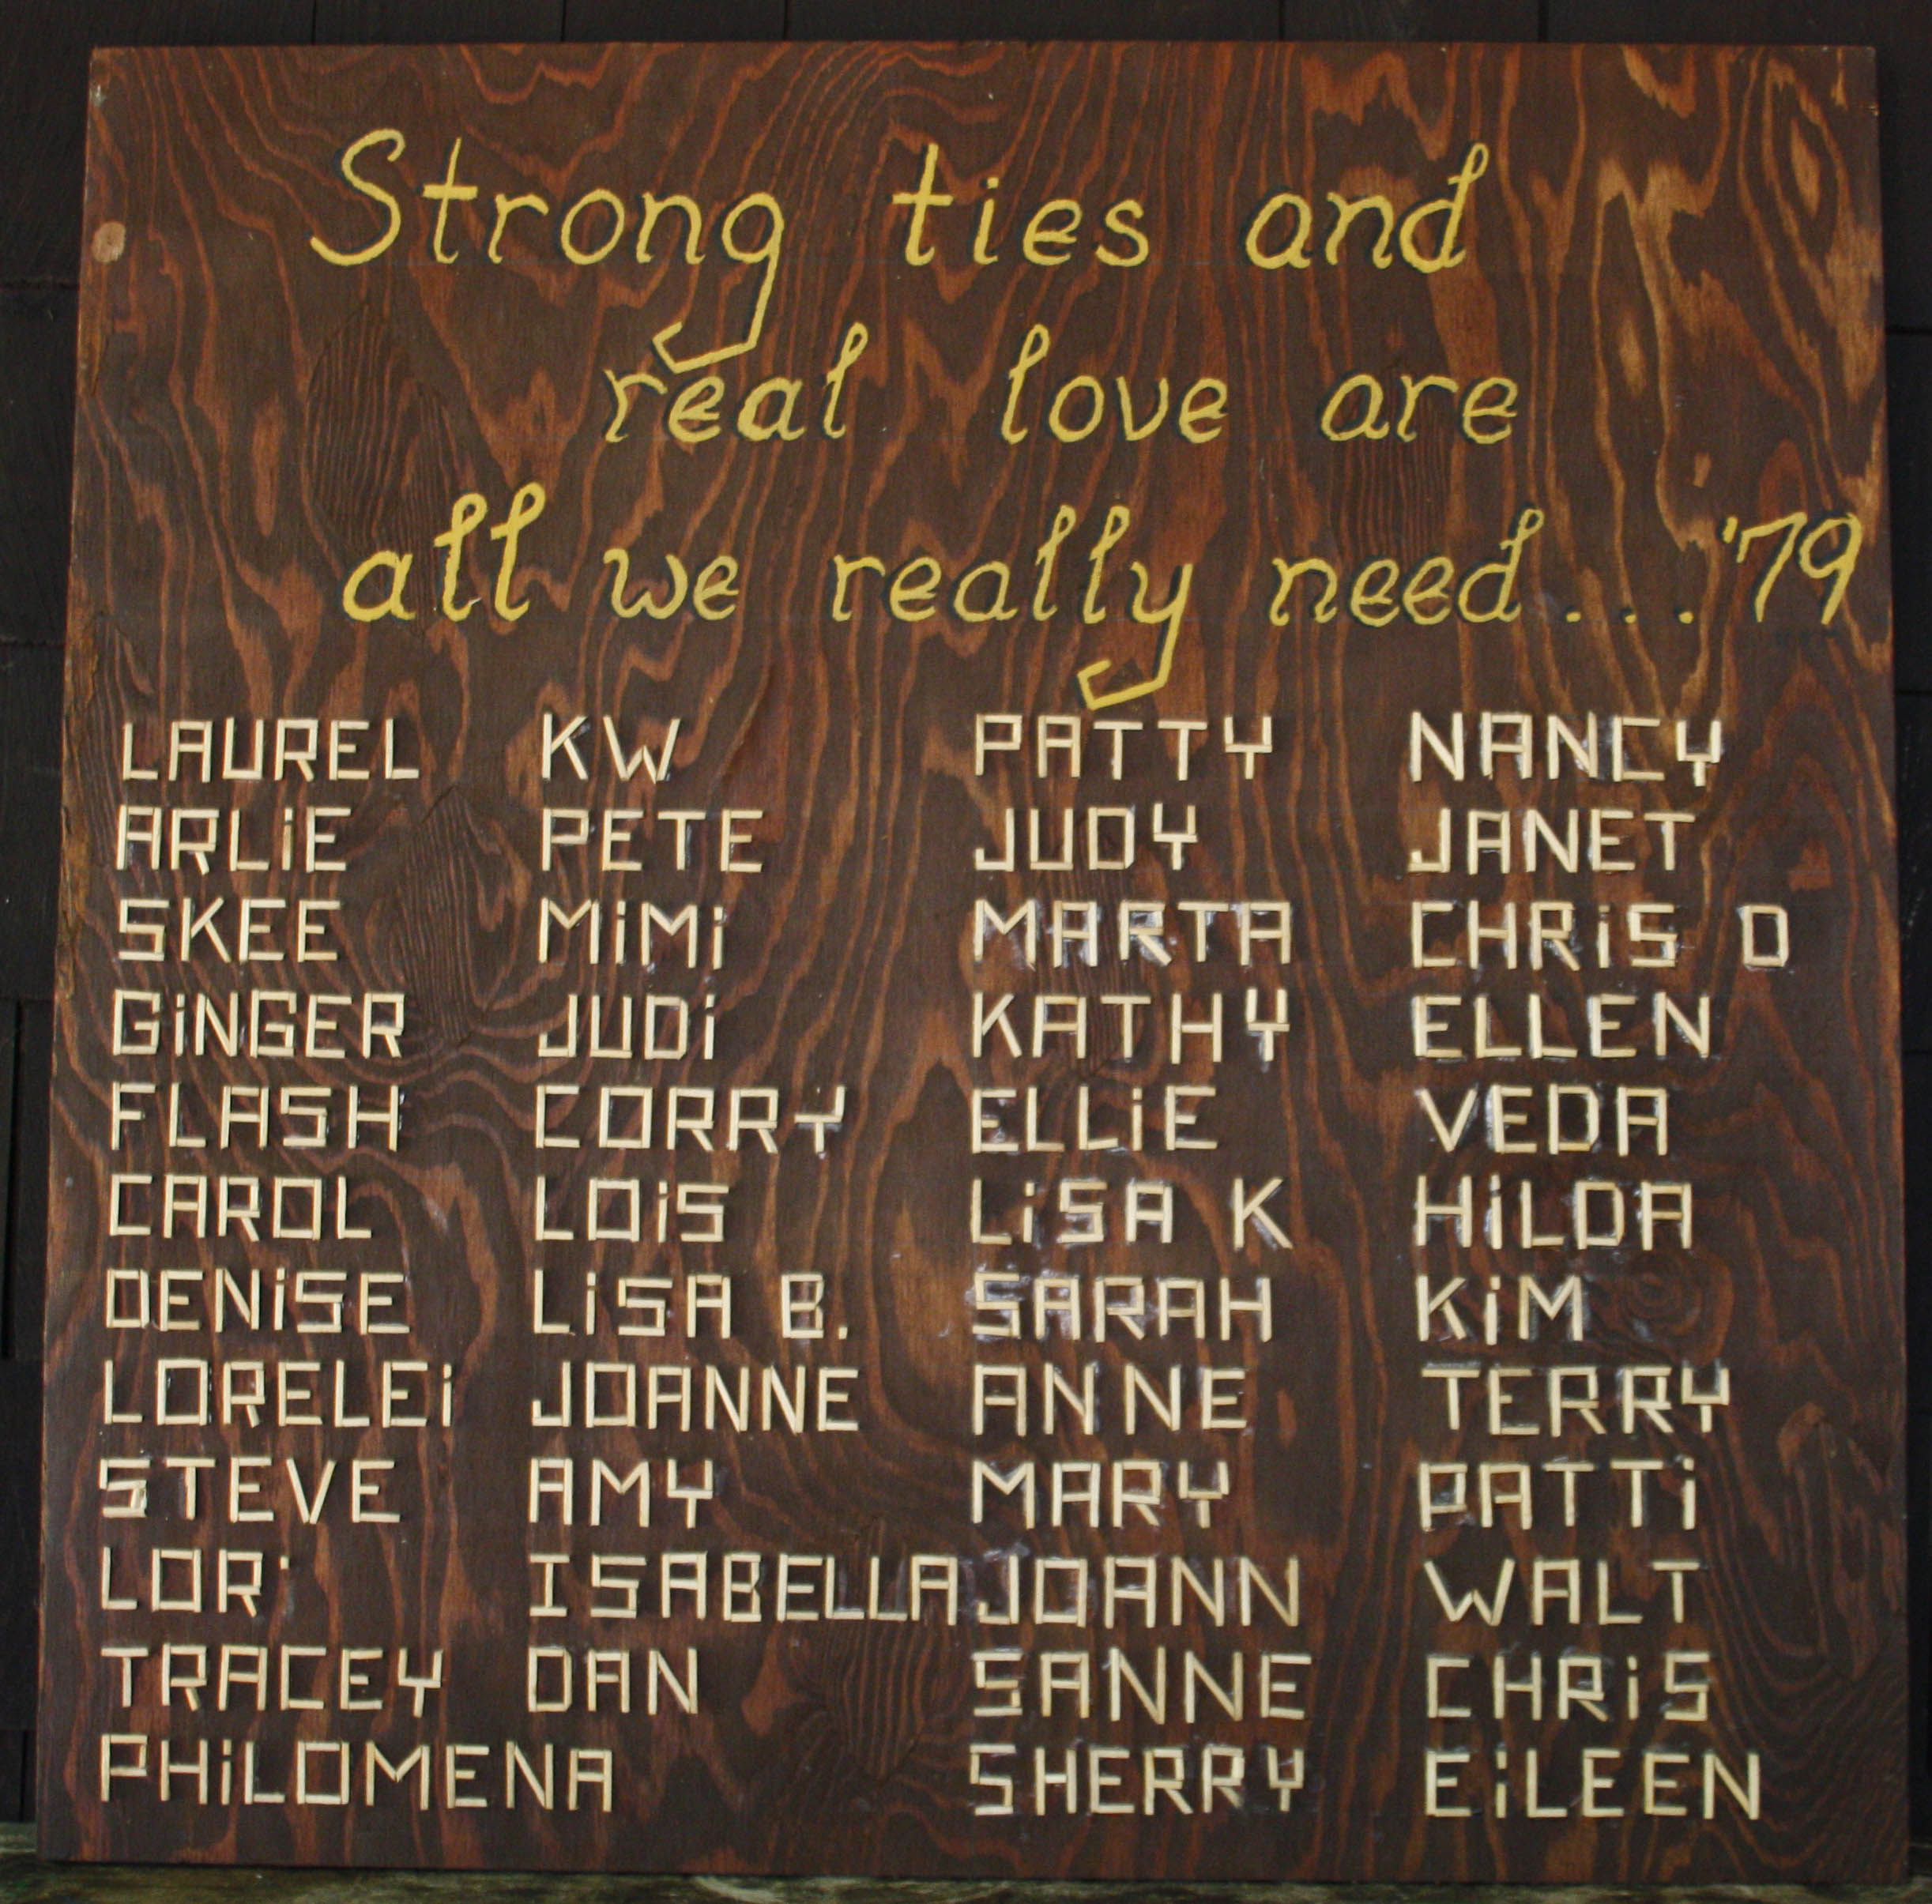 1979-strong-ties-and-real-love-are-all-we-really-need_43498209815_o.jpg